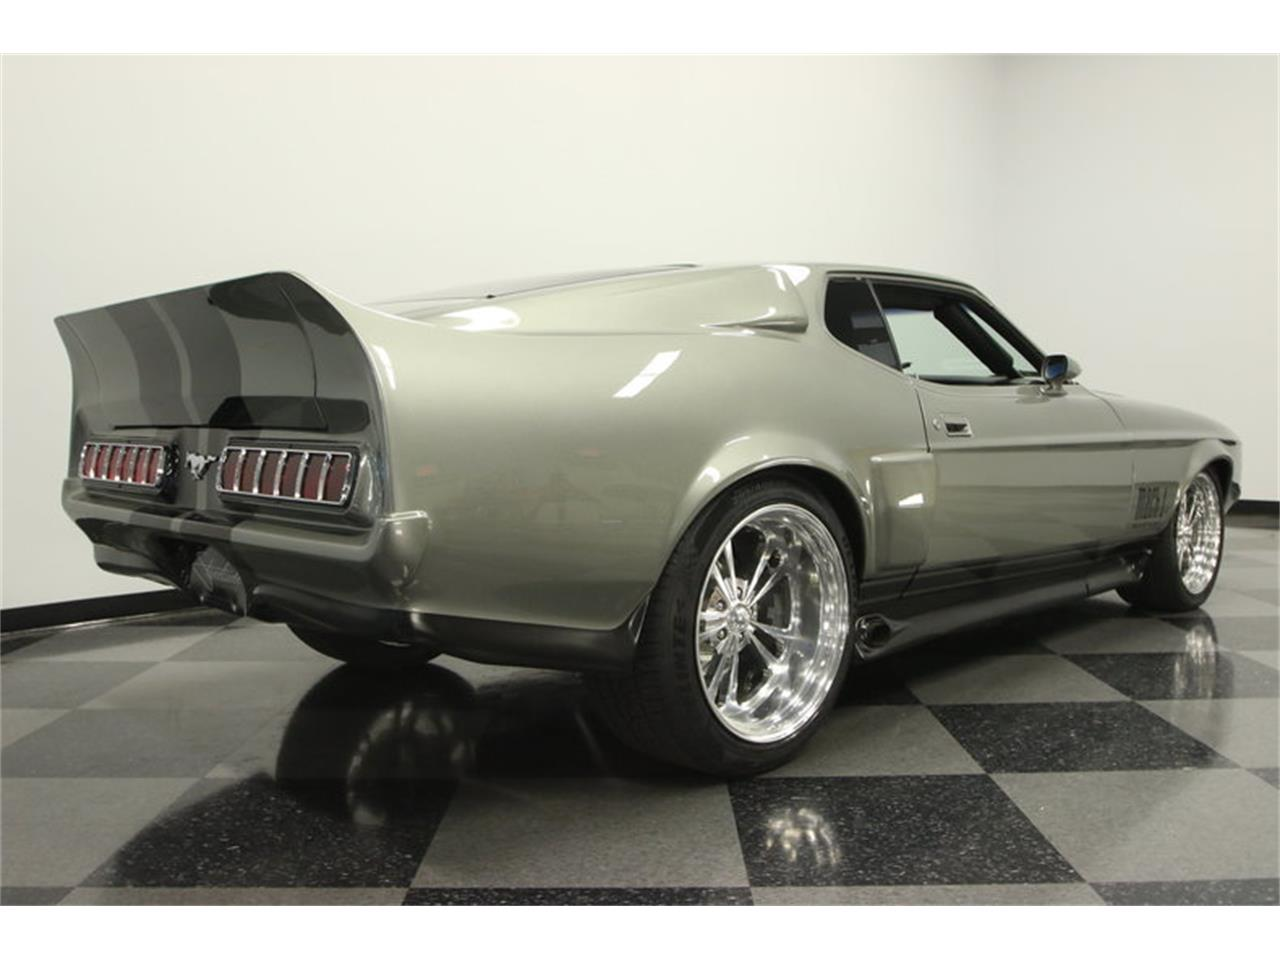 Large Picture of 1971 Ford Mustang Fastback Restomod located in Lutz Florida - $99,995.00 Offered by Streetside Classics - Tampa - MGHW